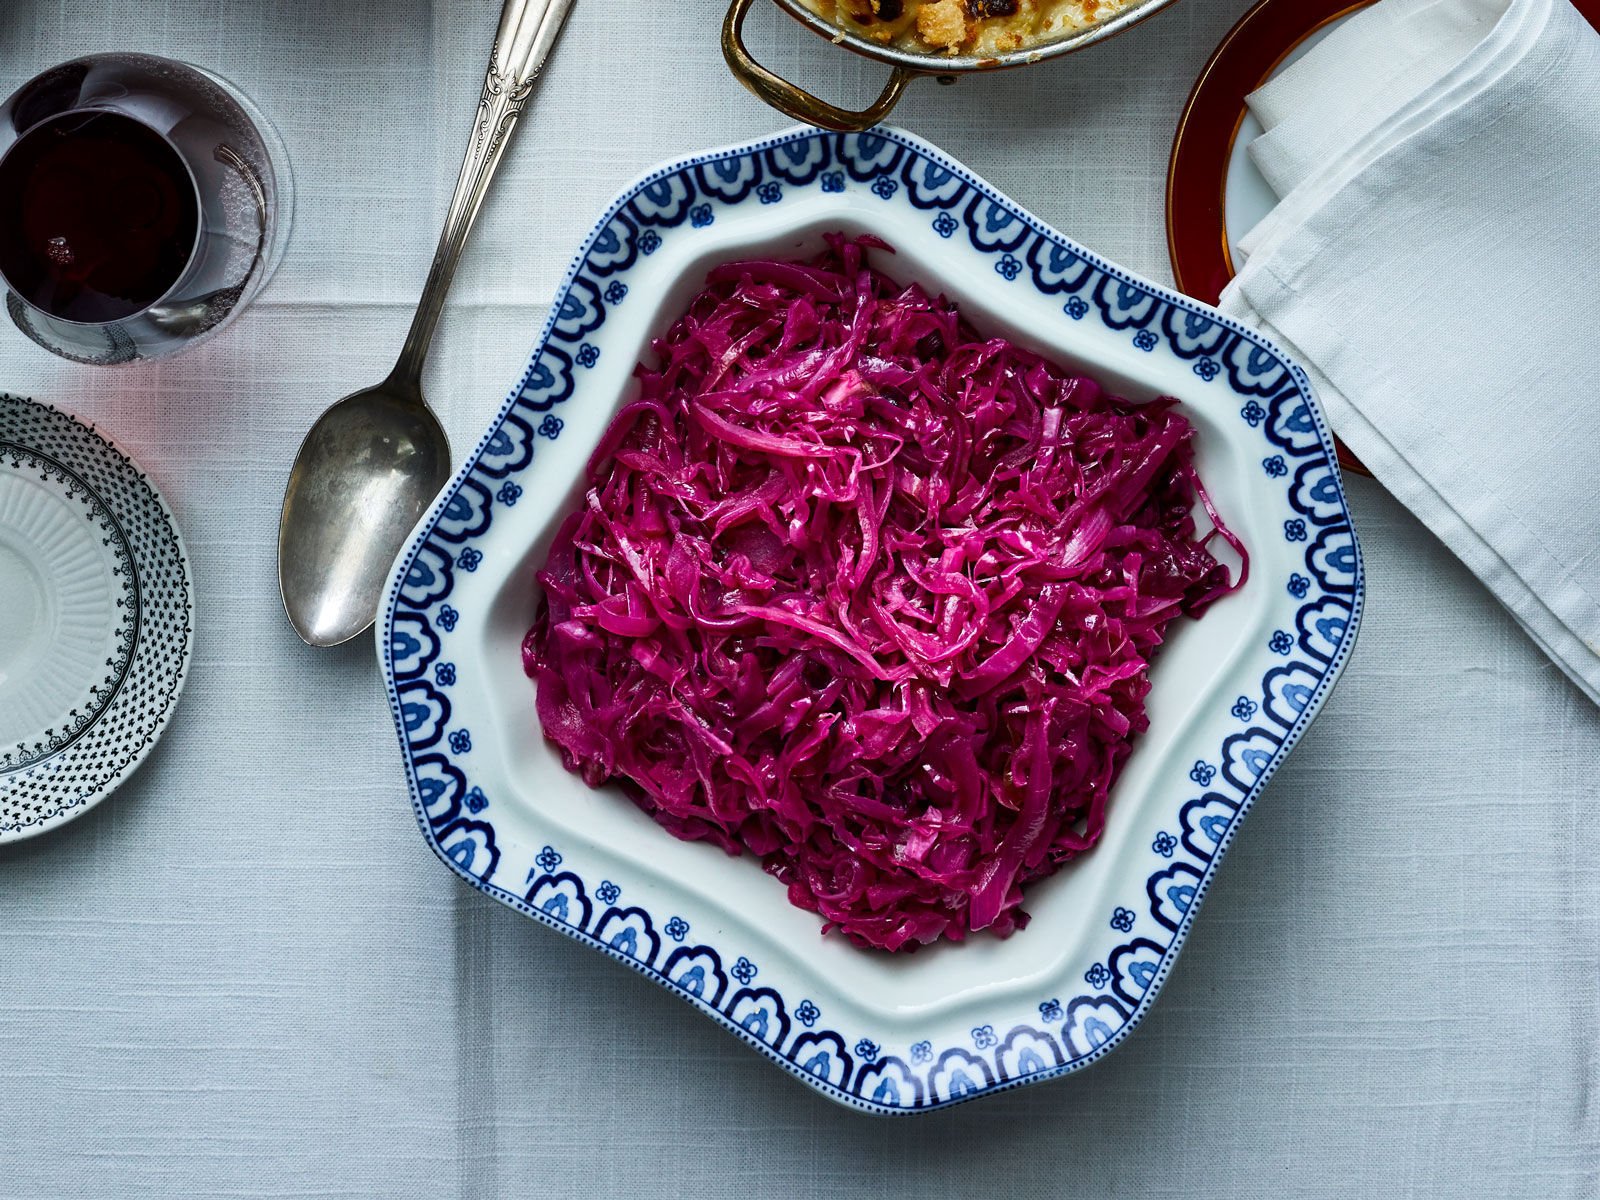 Braised Red Cabbage with Red Currant Jelly